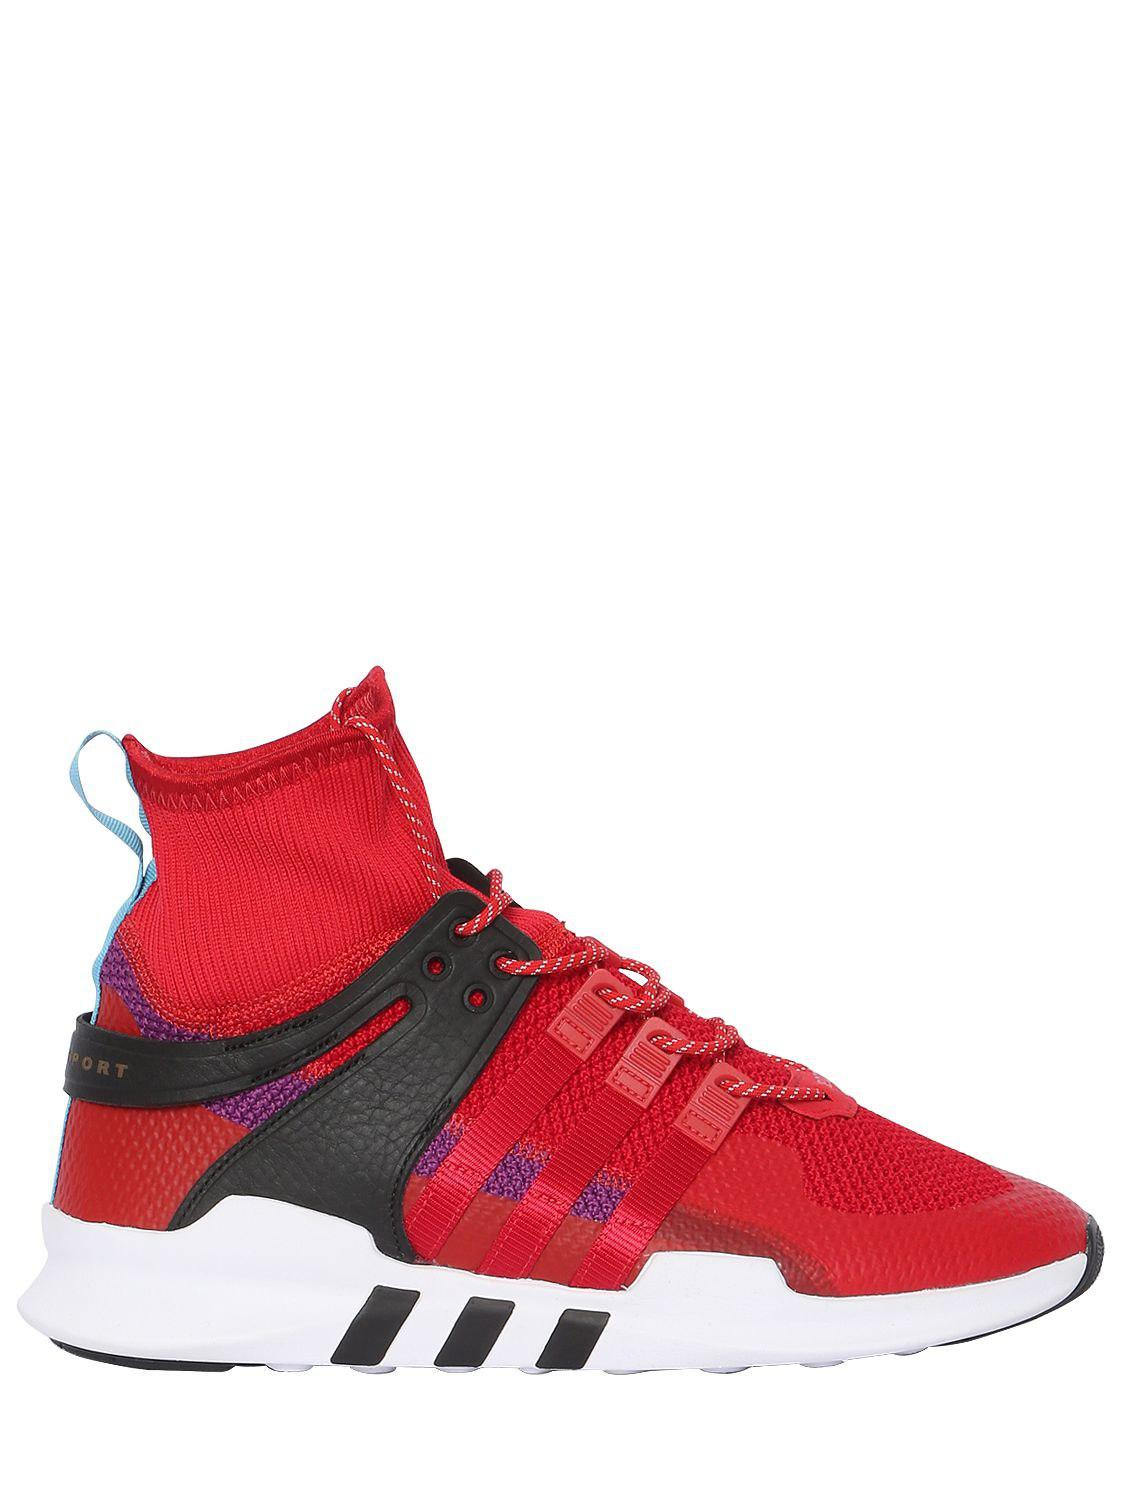 b6651b1f89c3 Lyst - Adidas Originals Eqt Support Adv Sneakers in Red for Men